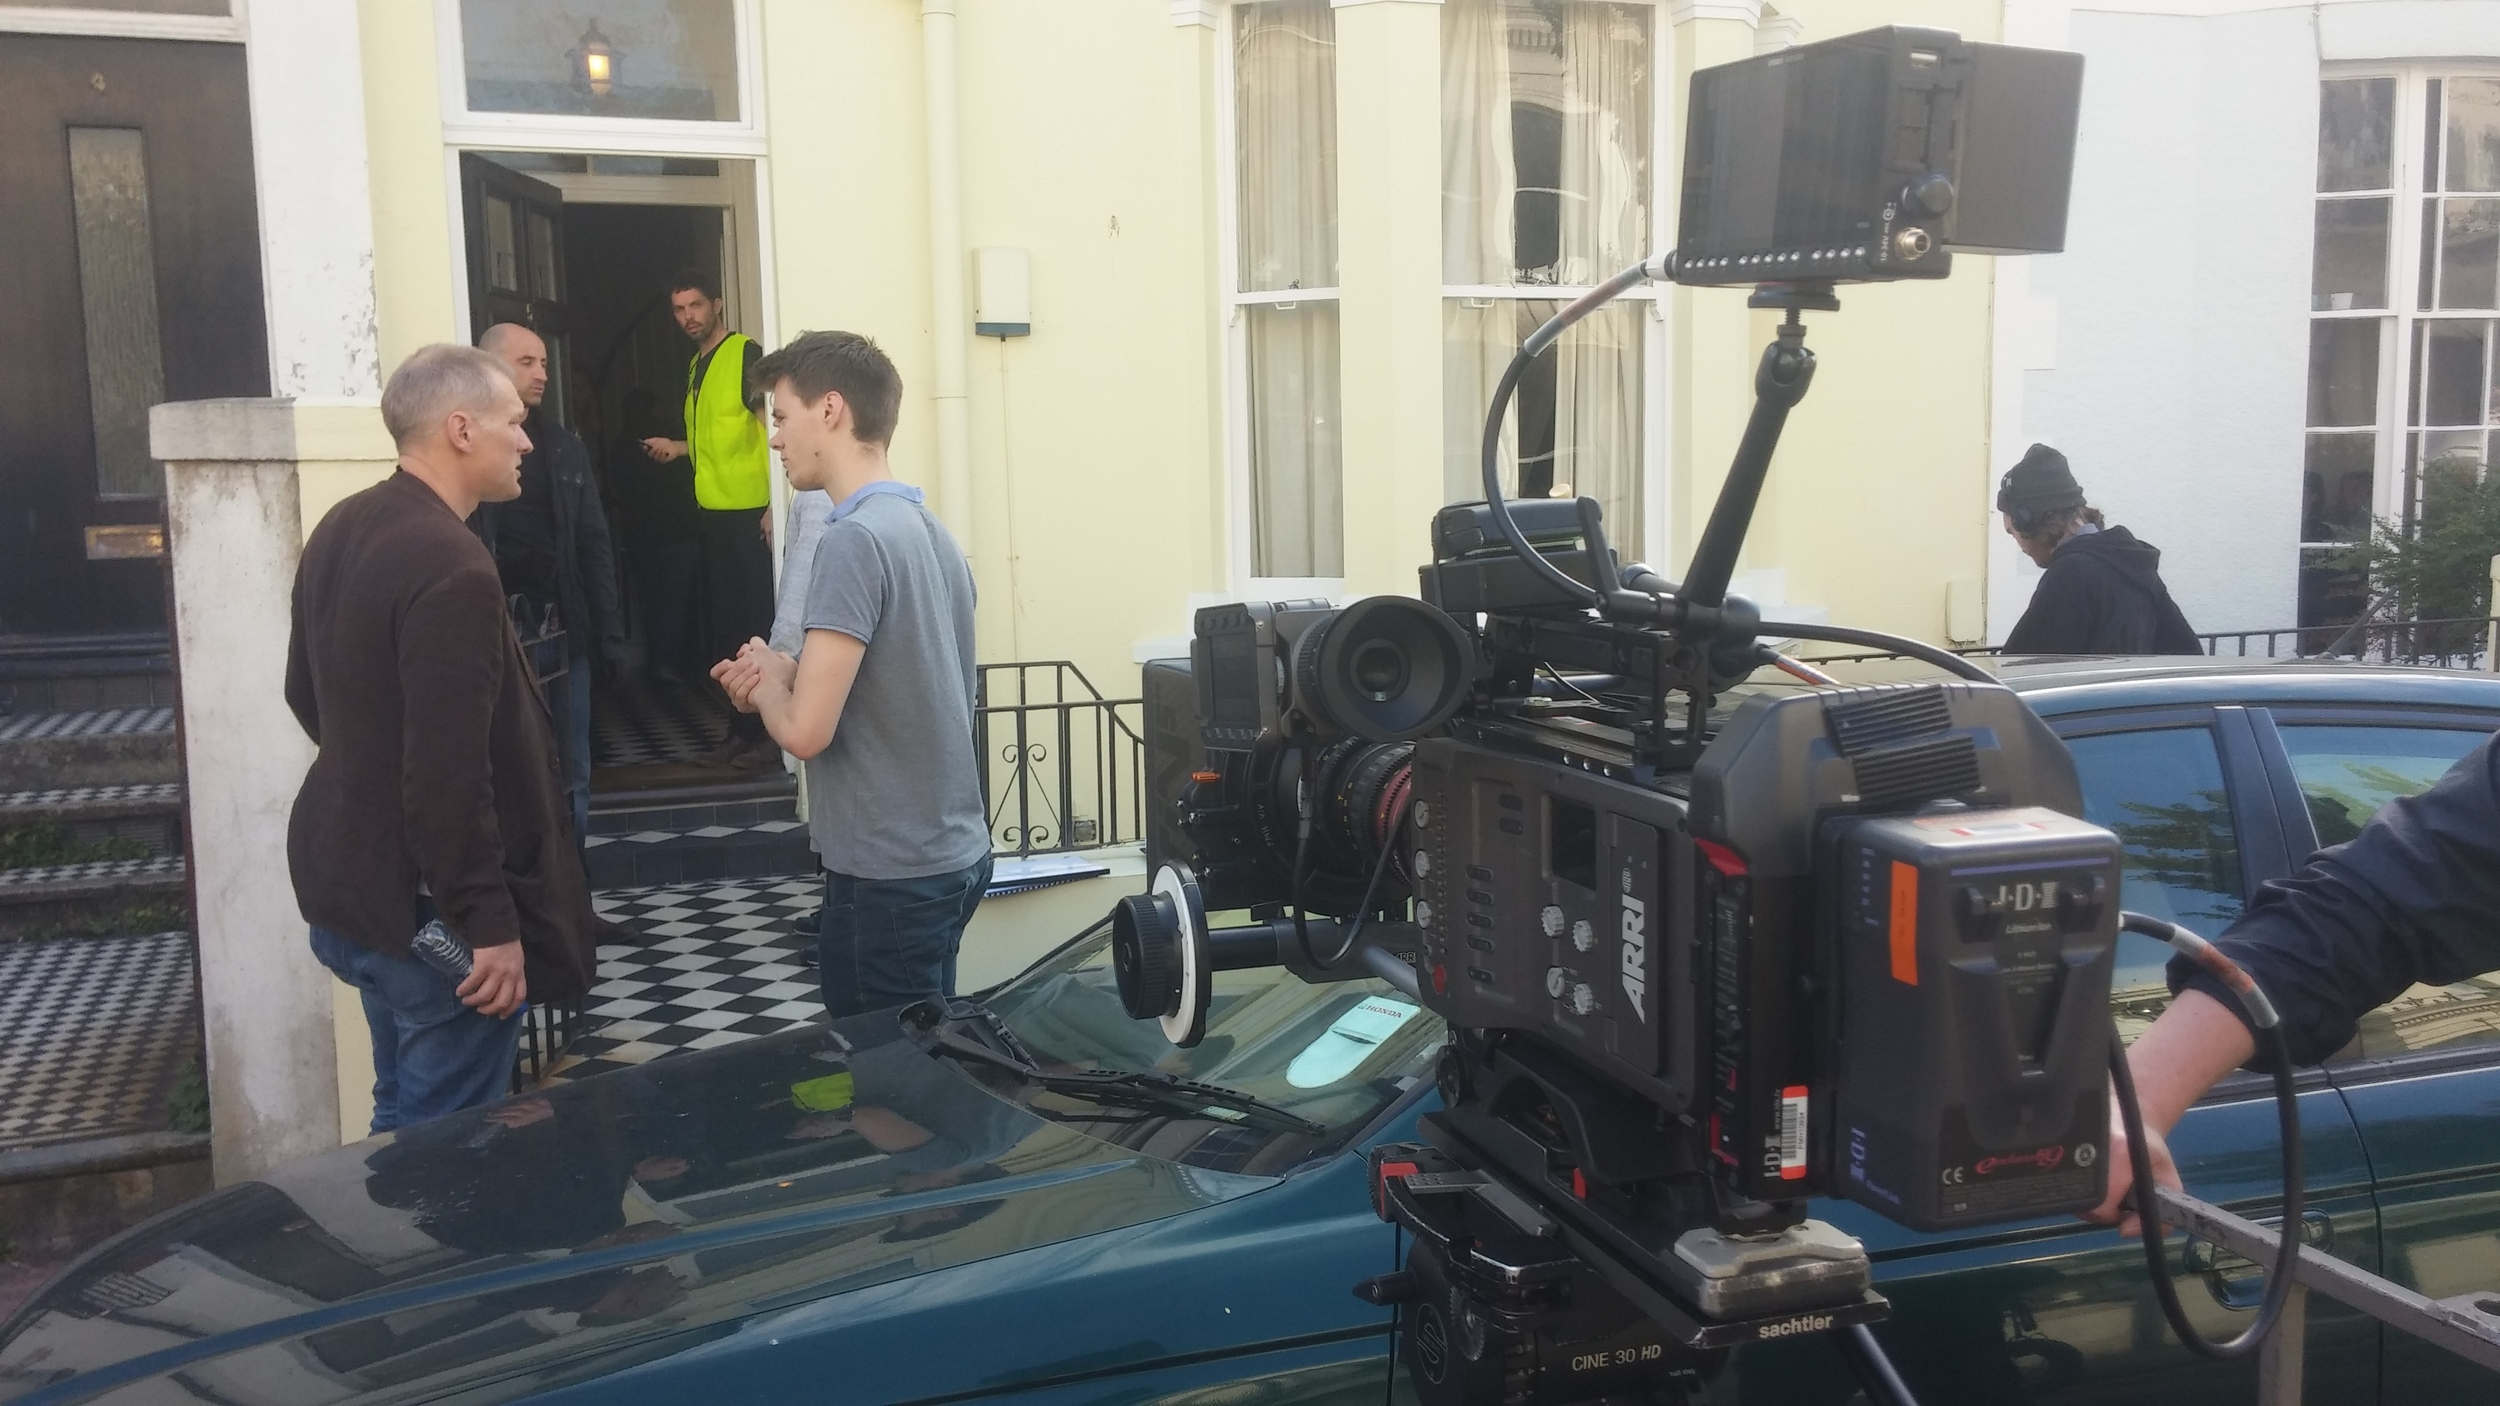 On set recently for 3 weeks of intensive indie film making for The Holly Kane Experiment.